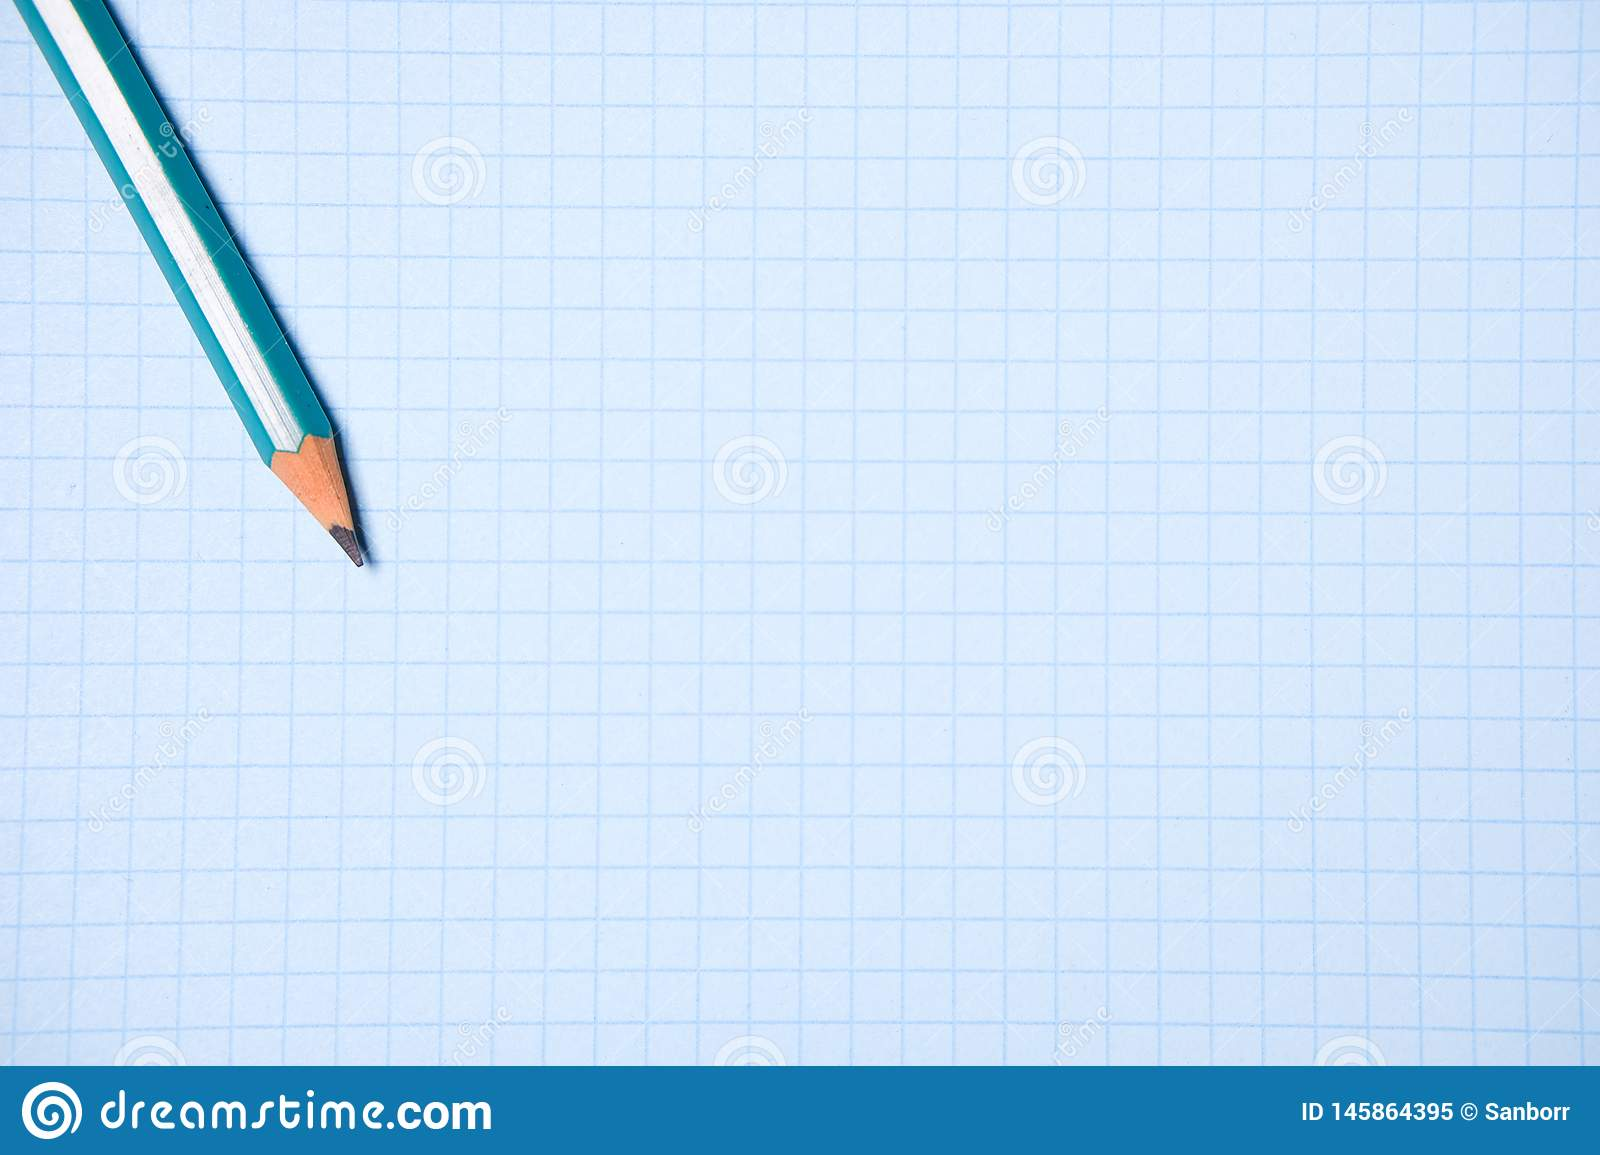 Pencil on a clean white paper sheet. The concept of education, business, entrepreneurship. Copy space